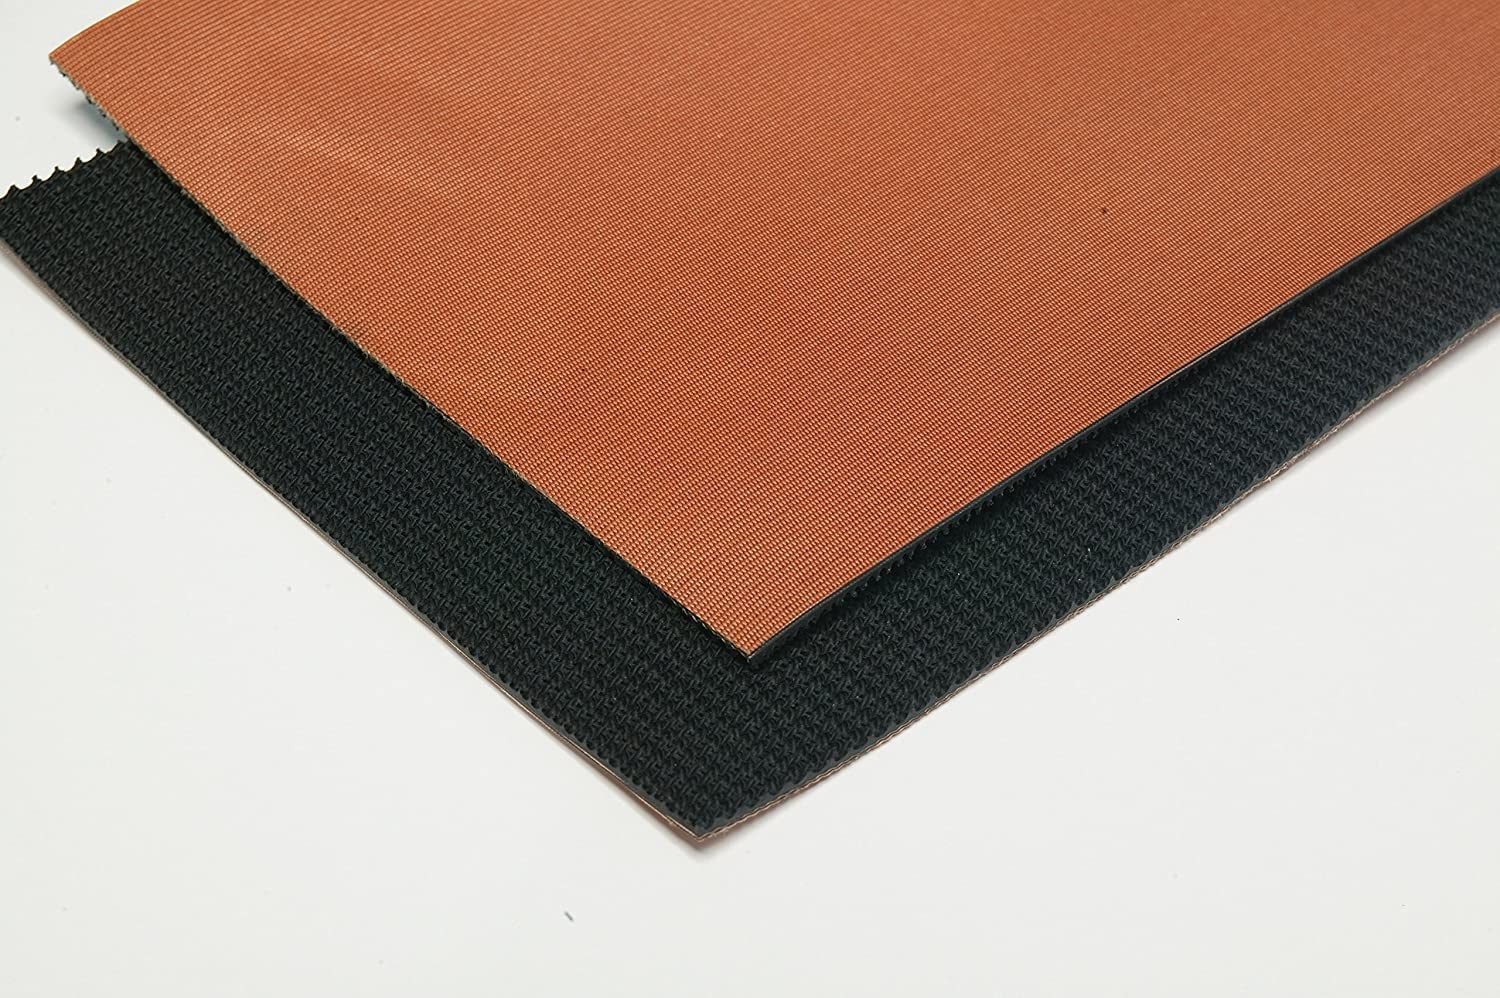 Griptop ramp//horsebox matting Ultimate non-slip rubber 1m x 1.2m x 6mm high density fabric backed